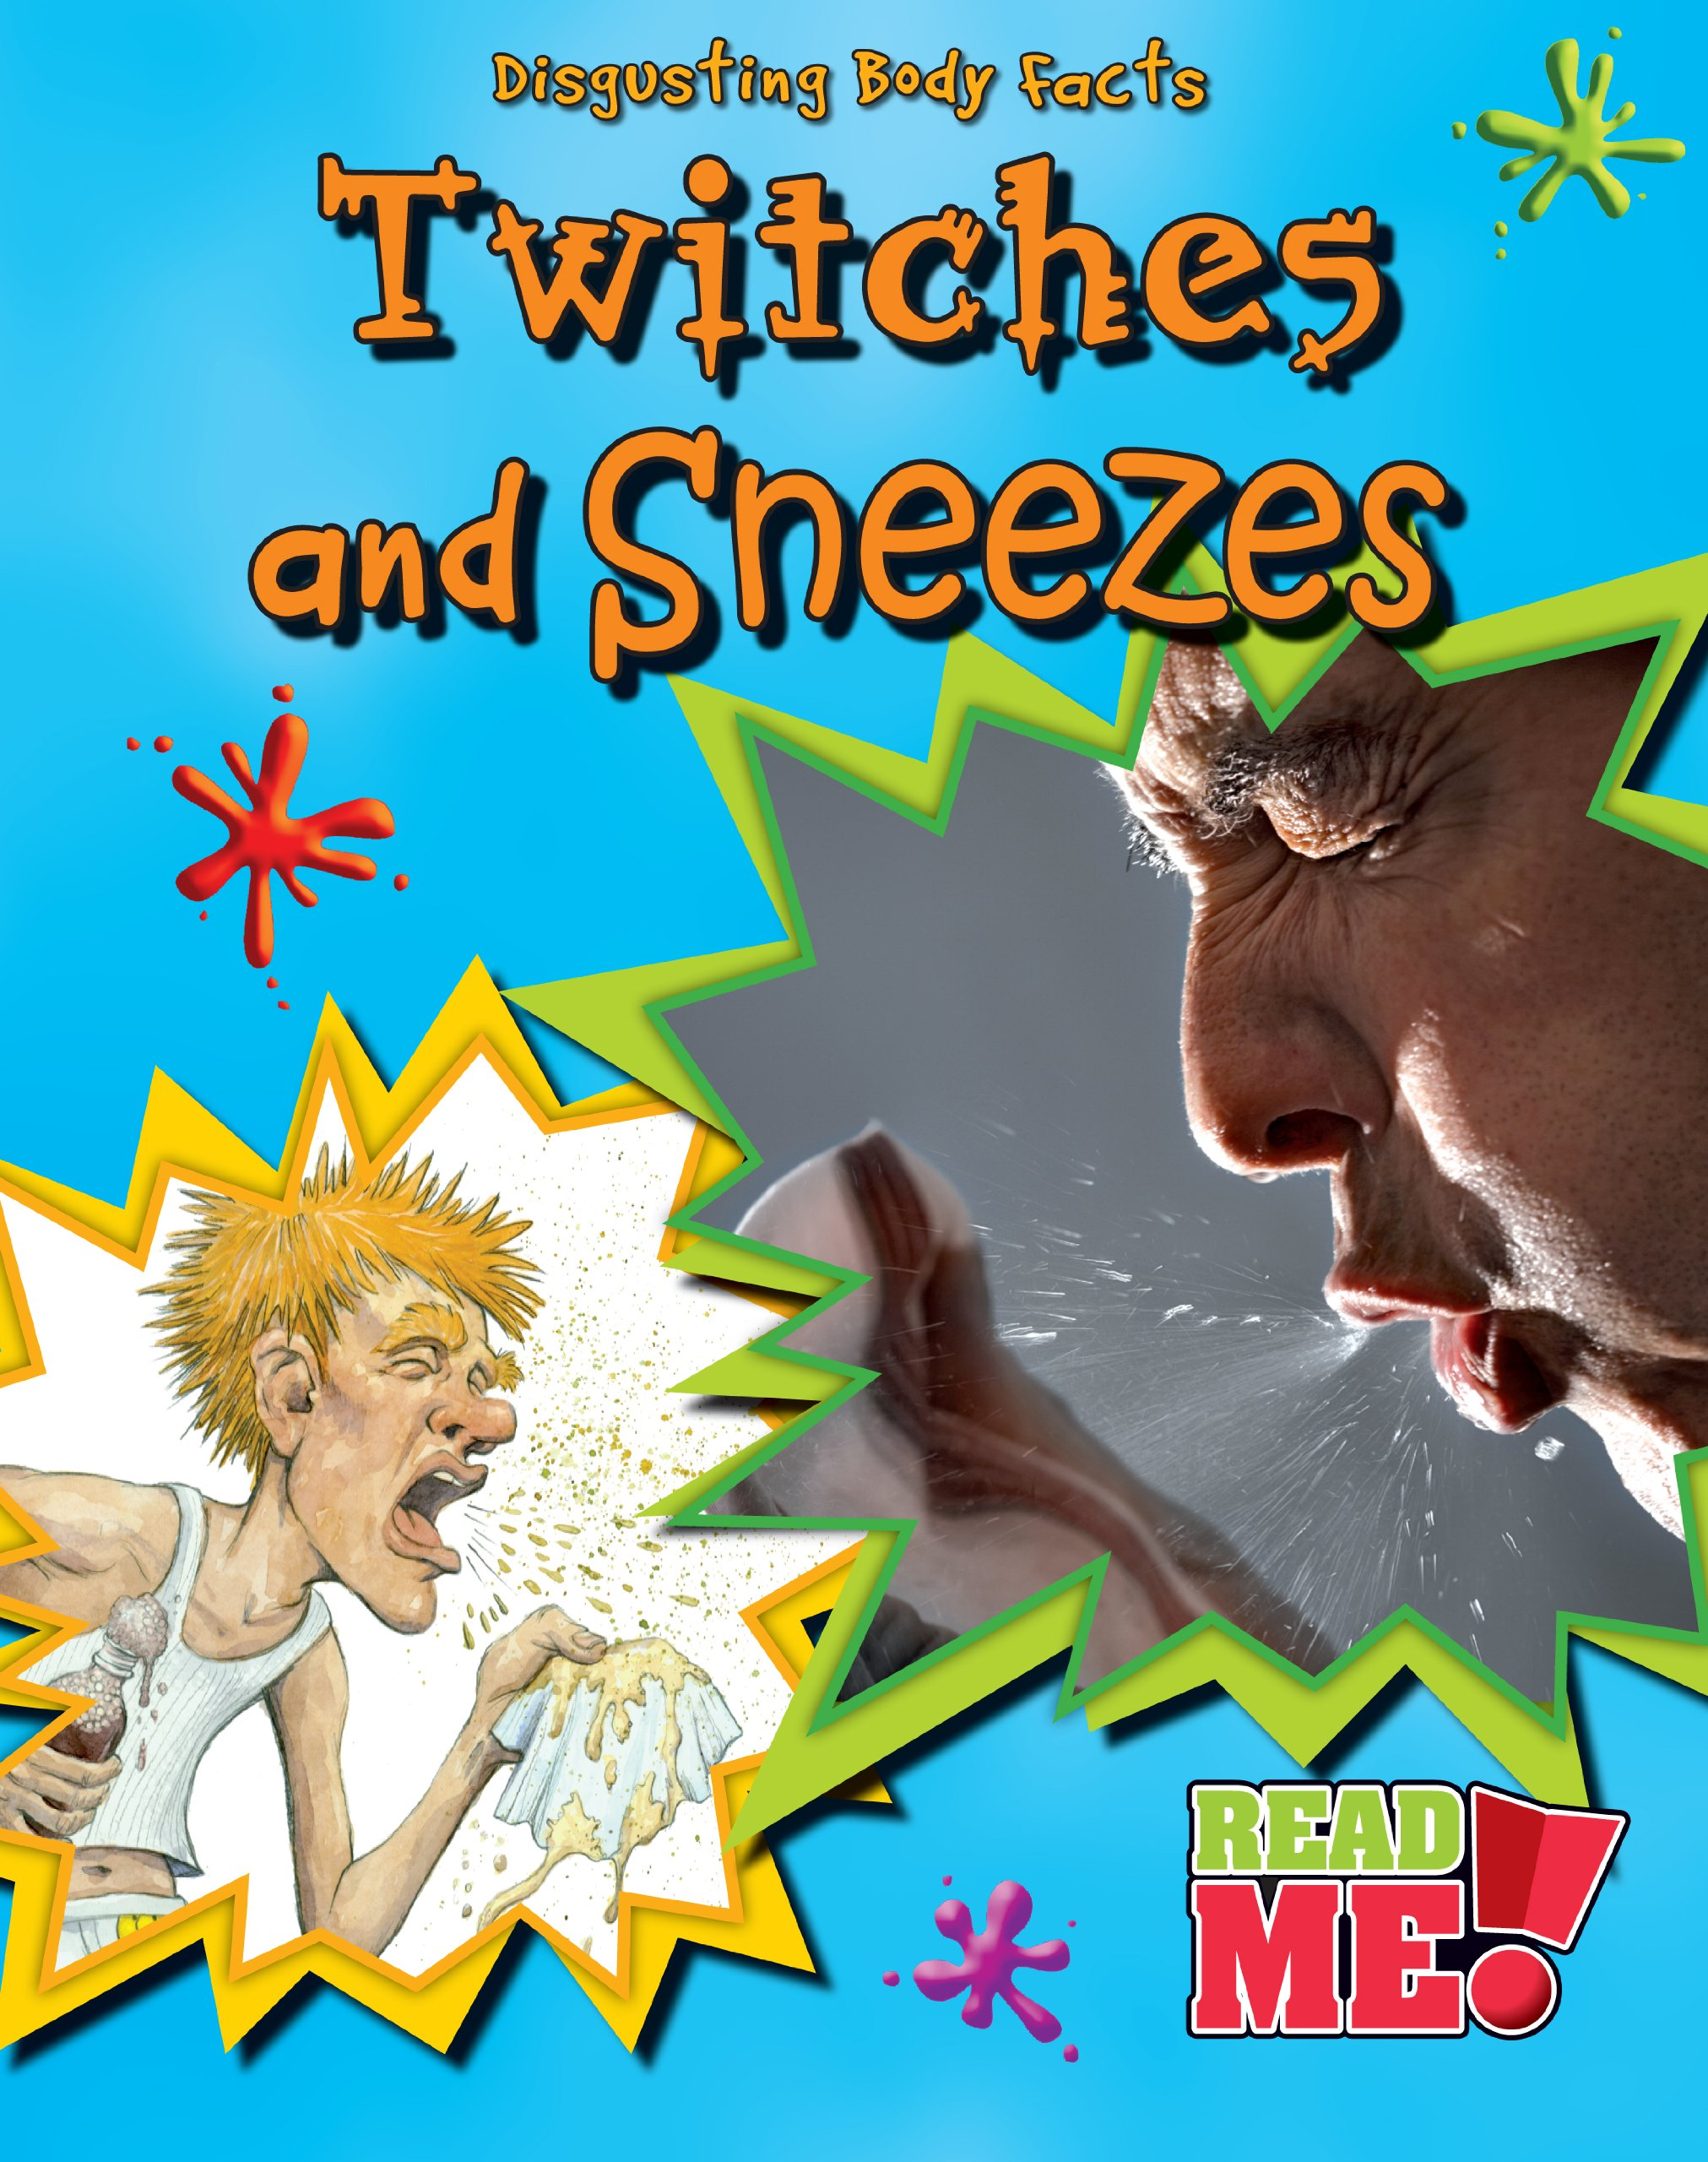 Download Twitches and Sneezes (Disgusting Body Facts) ebook